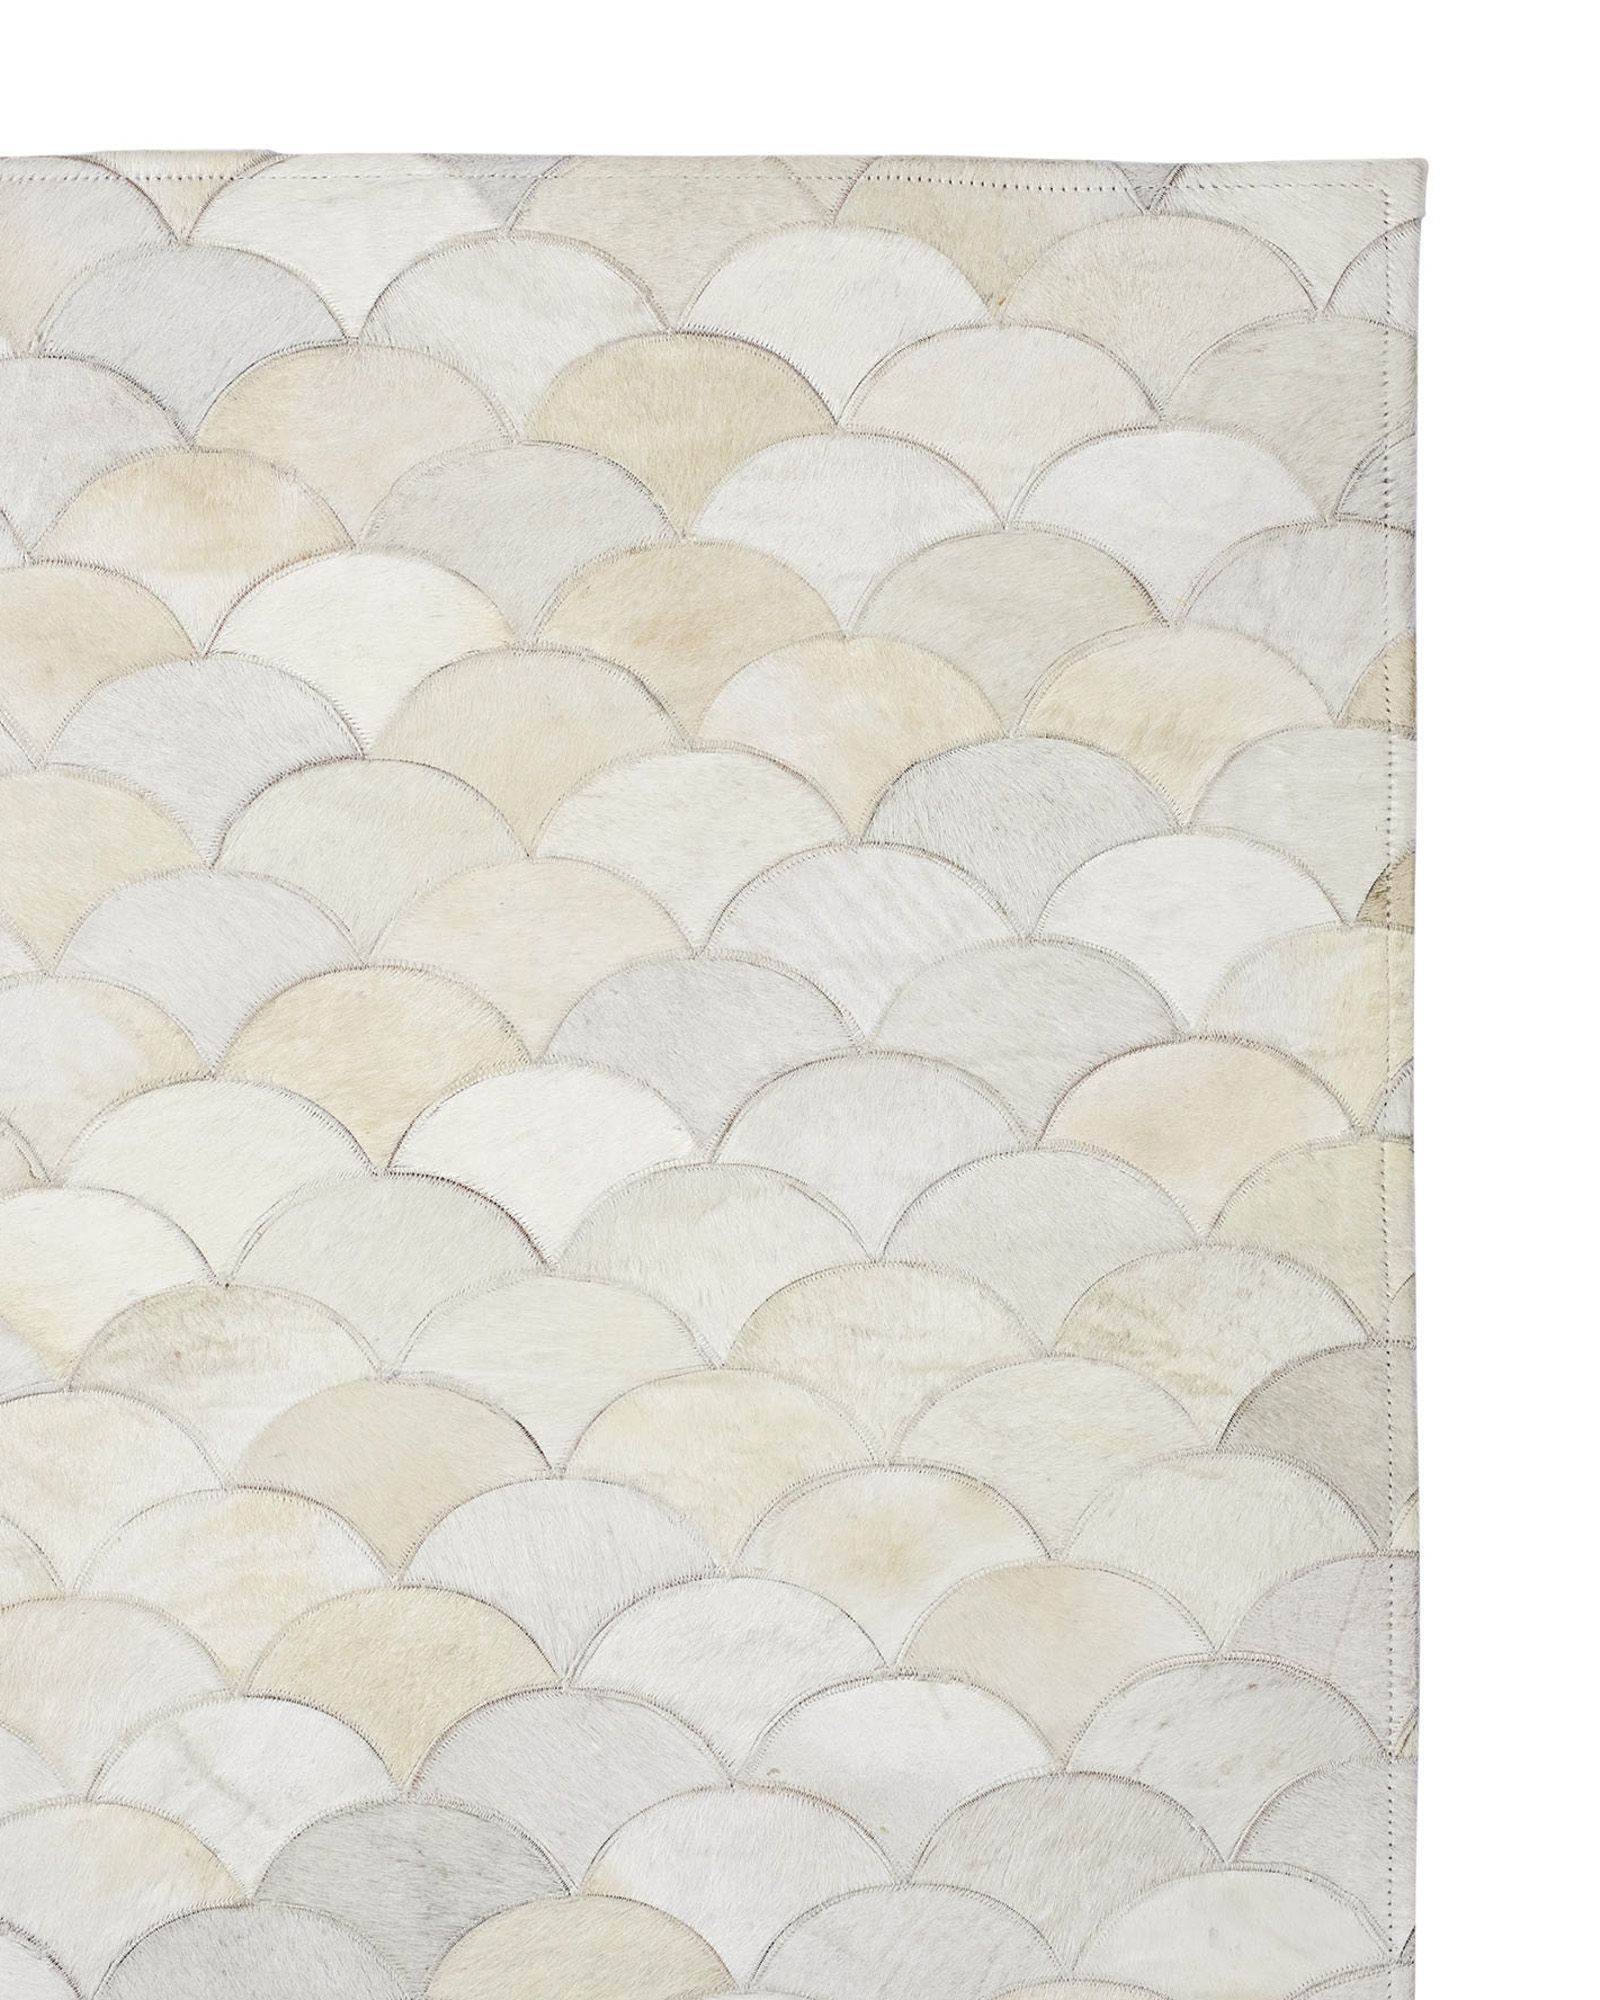 Scalloped Hide Rug Serenaandlily I Love This It Wears Very Well For A